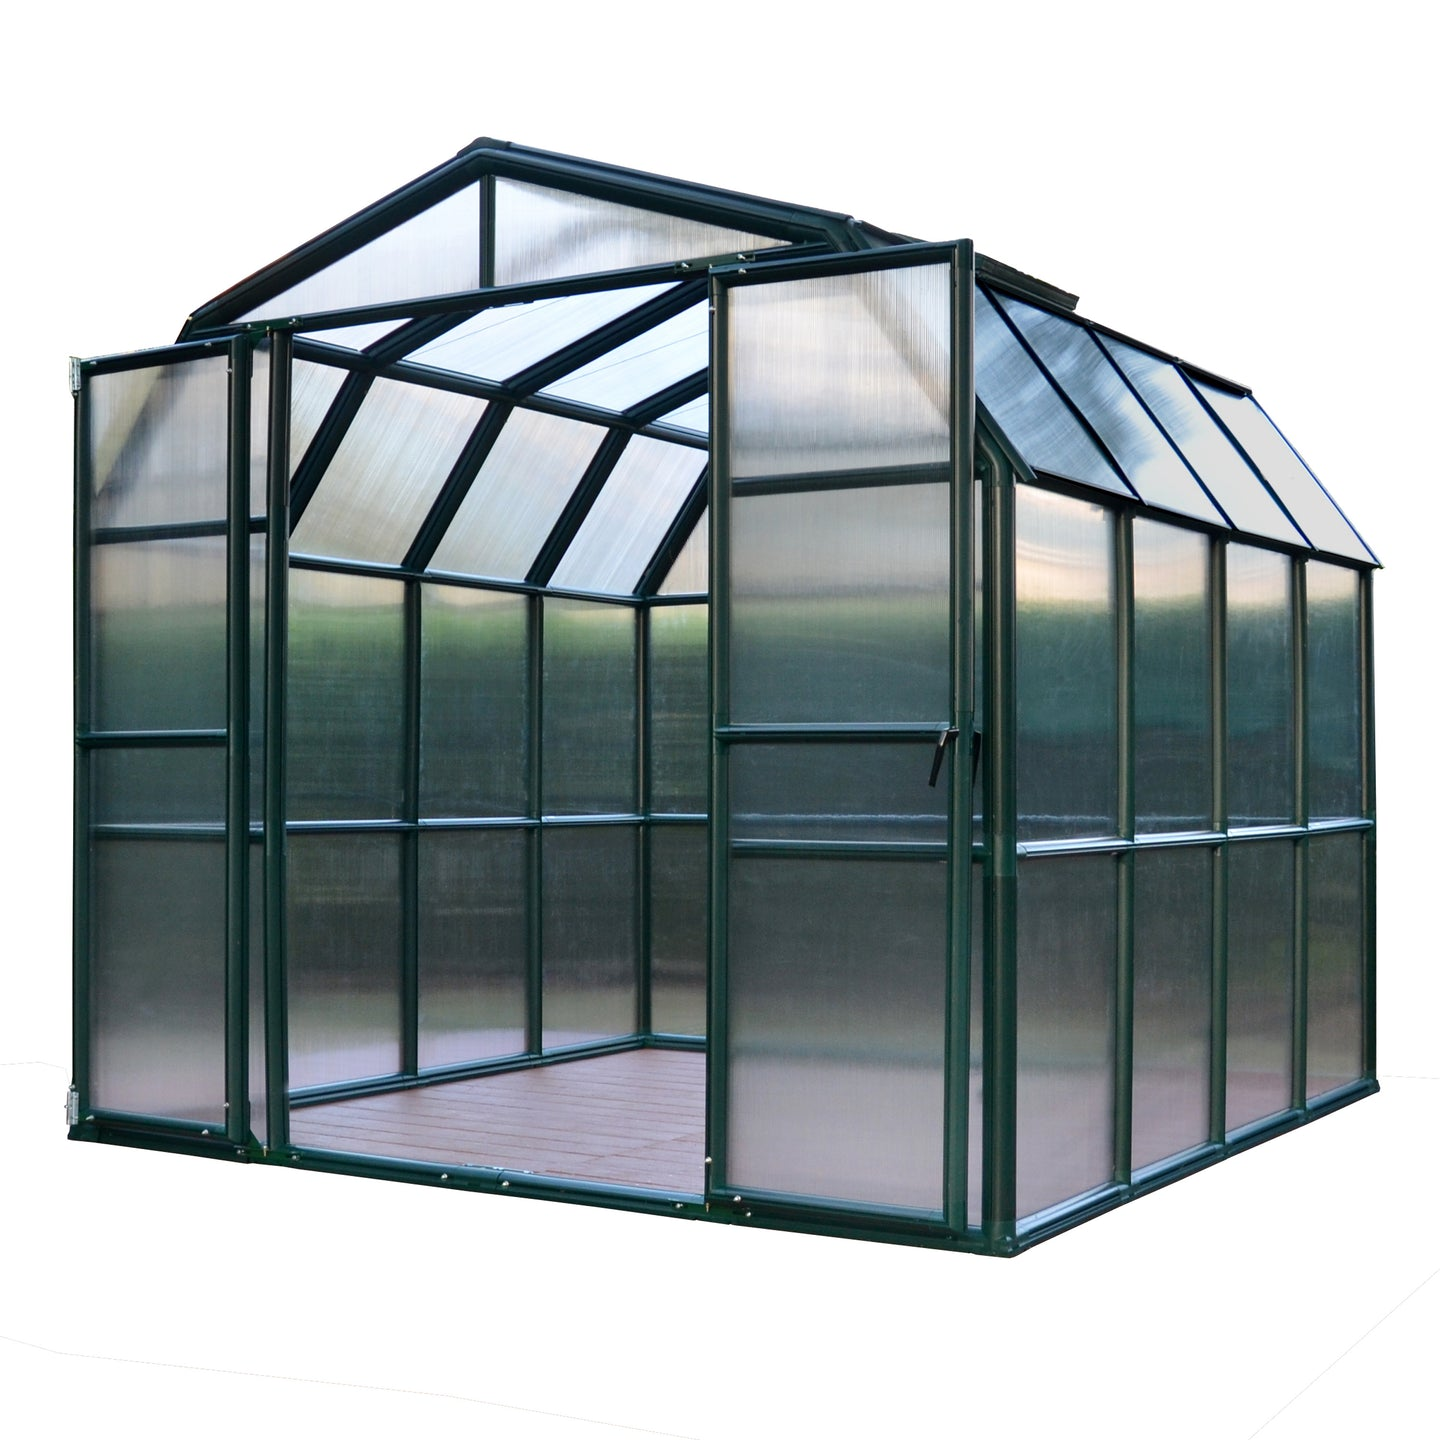 Rion Grand Gardener 8' x 8' Greenhouse - Twin Wall